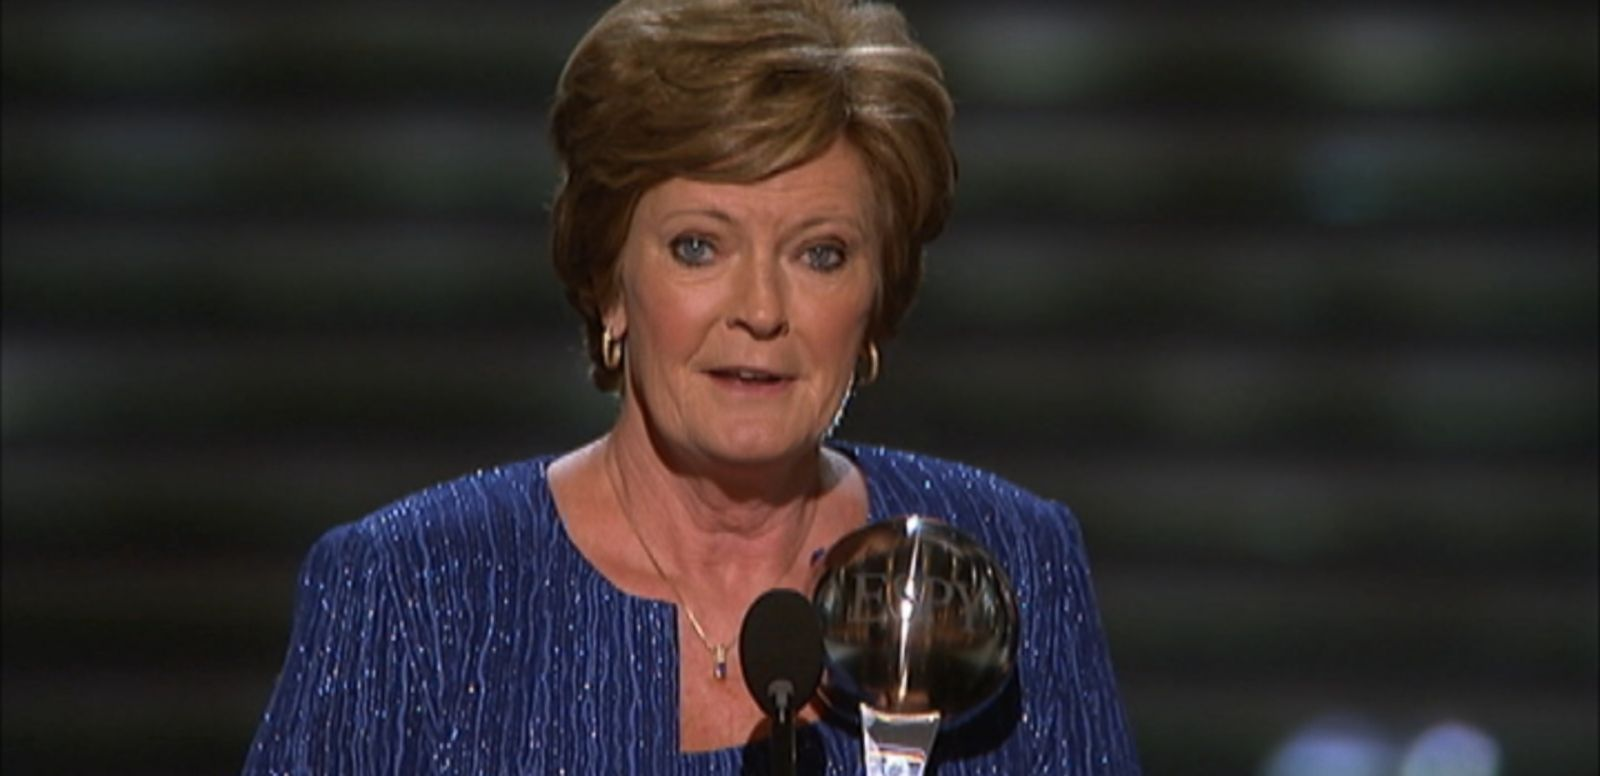 VIDEO: The University of Tennessee coach received the Arthur Ashe Courage Award in July 2012.